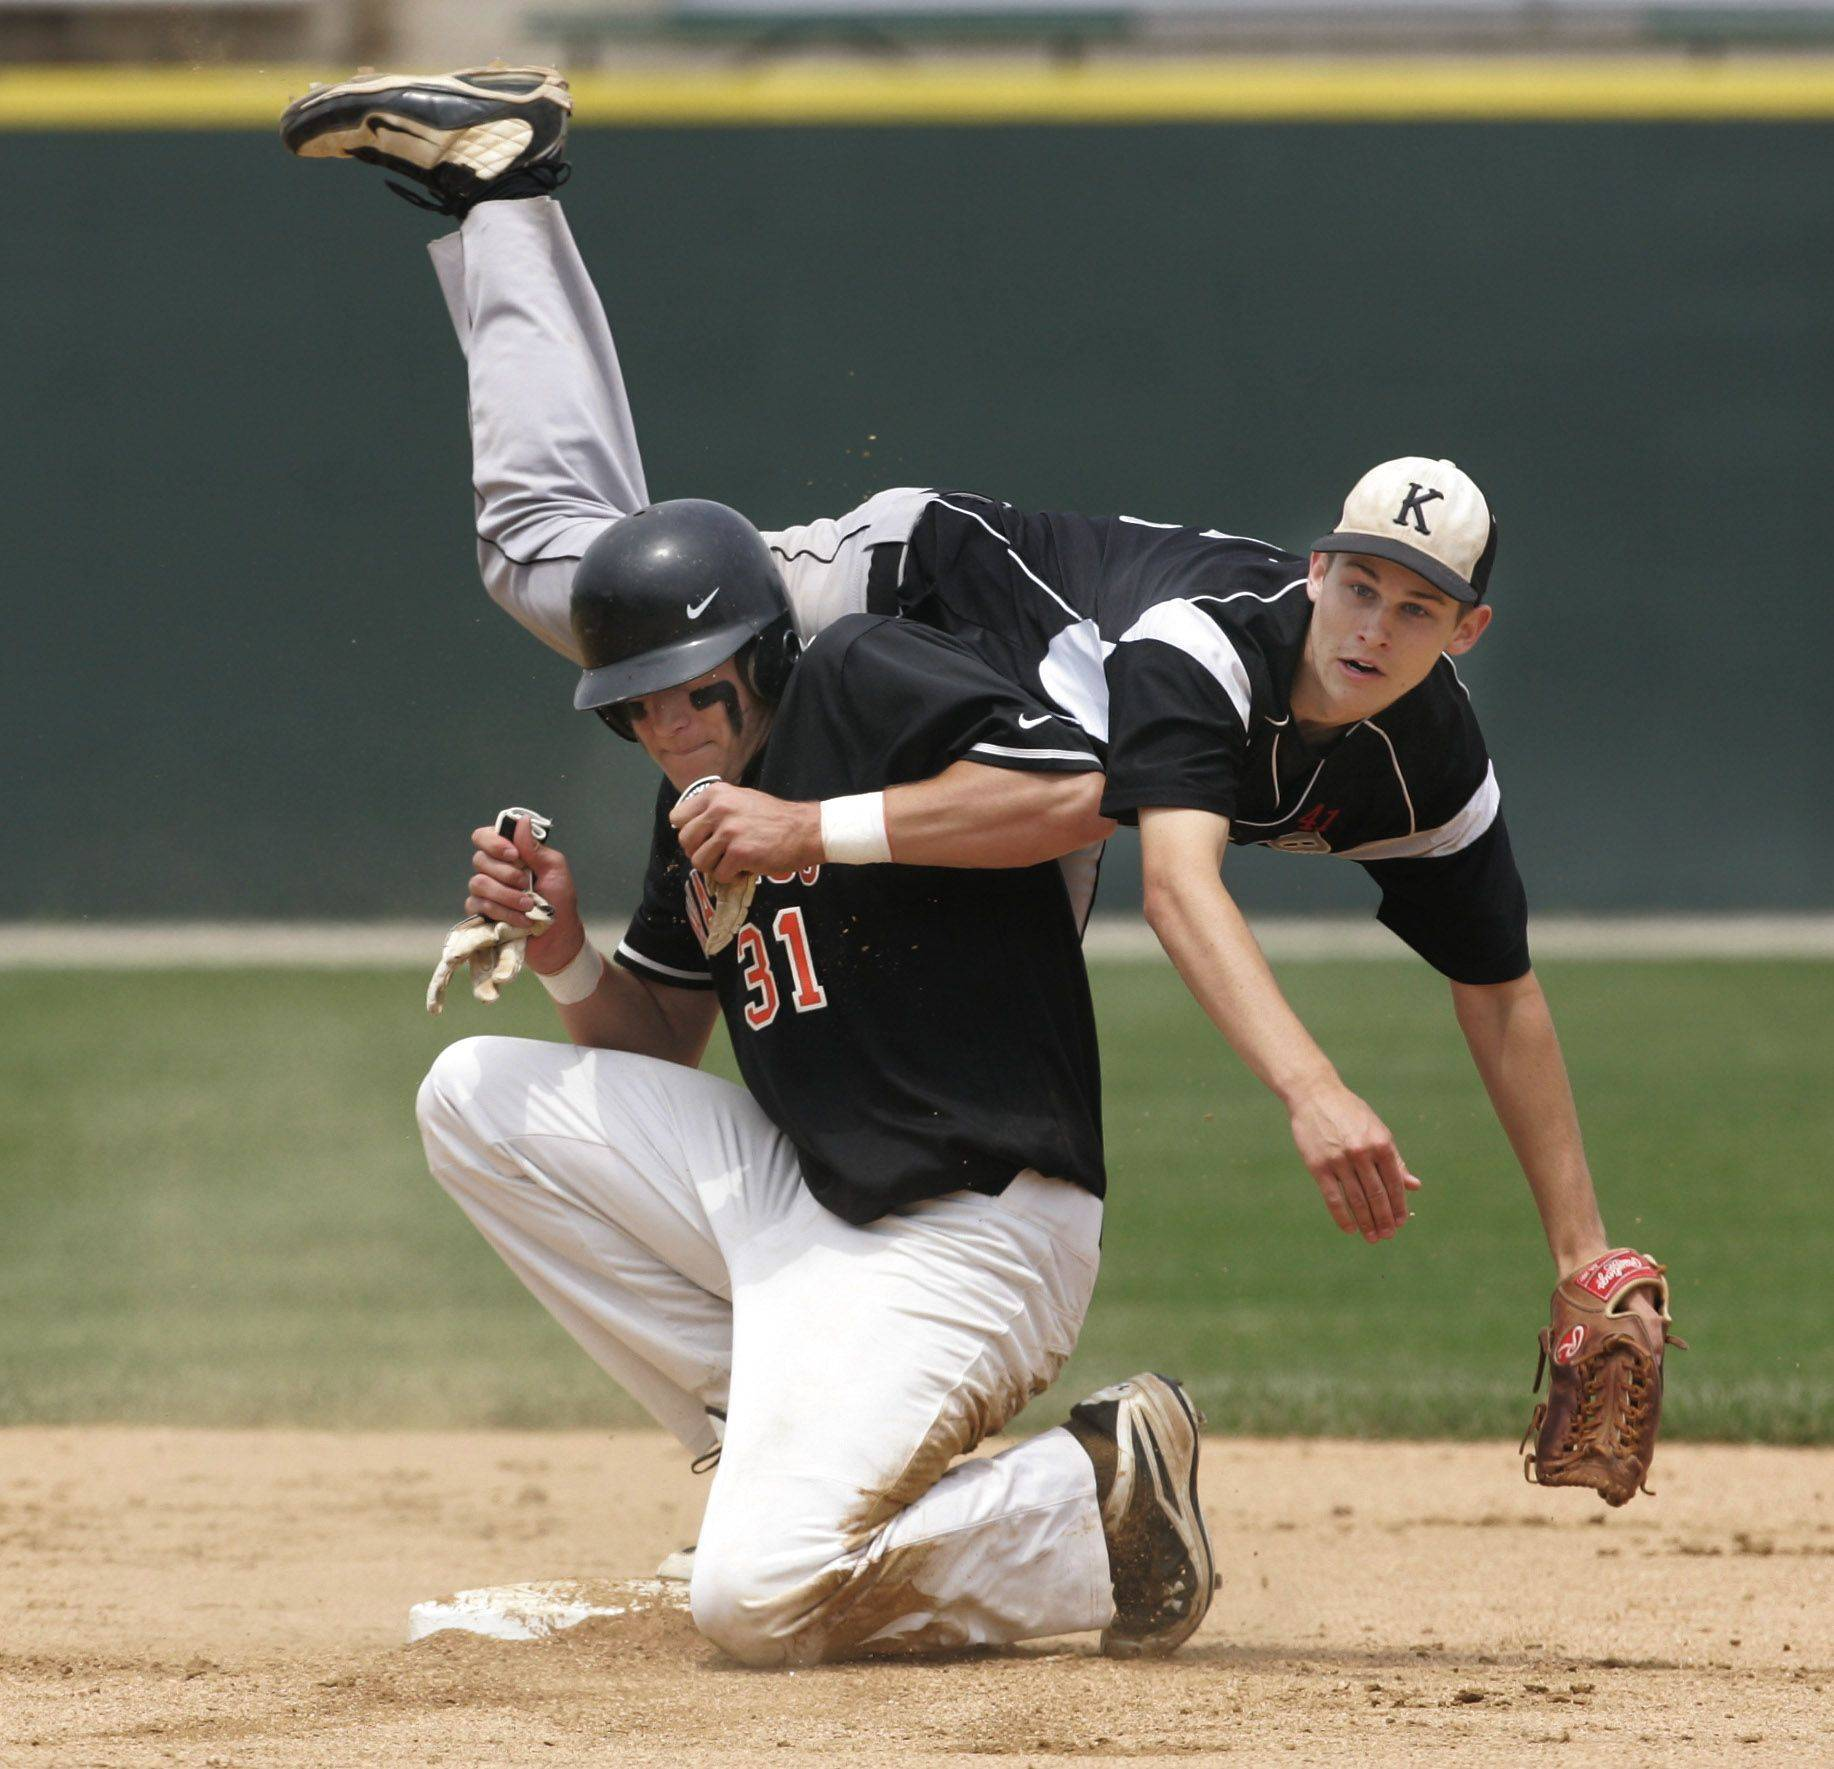 Kaneland second baseman Brian Dixon is upended by Waterloo runner Garrett Schlecht as he makes a double play in the first inning at Silver Cross Field in Joliet.